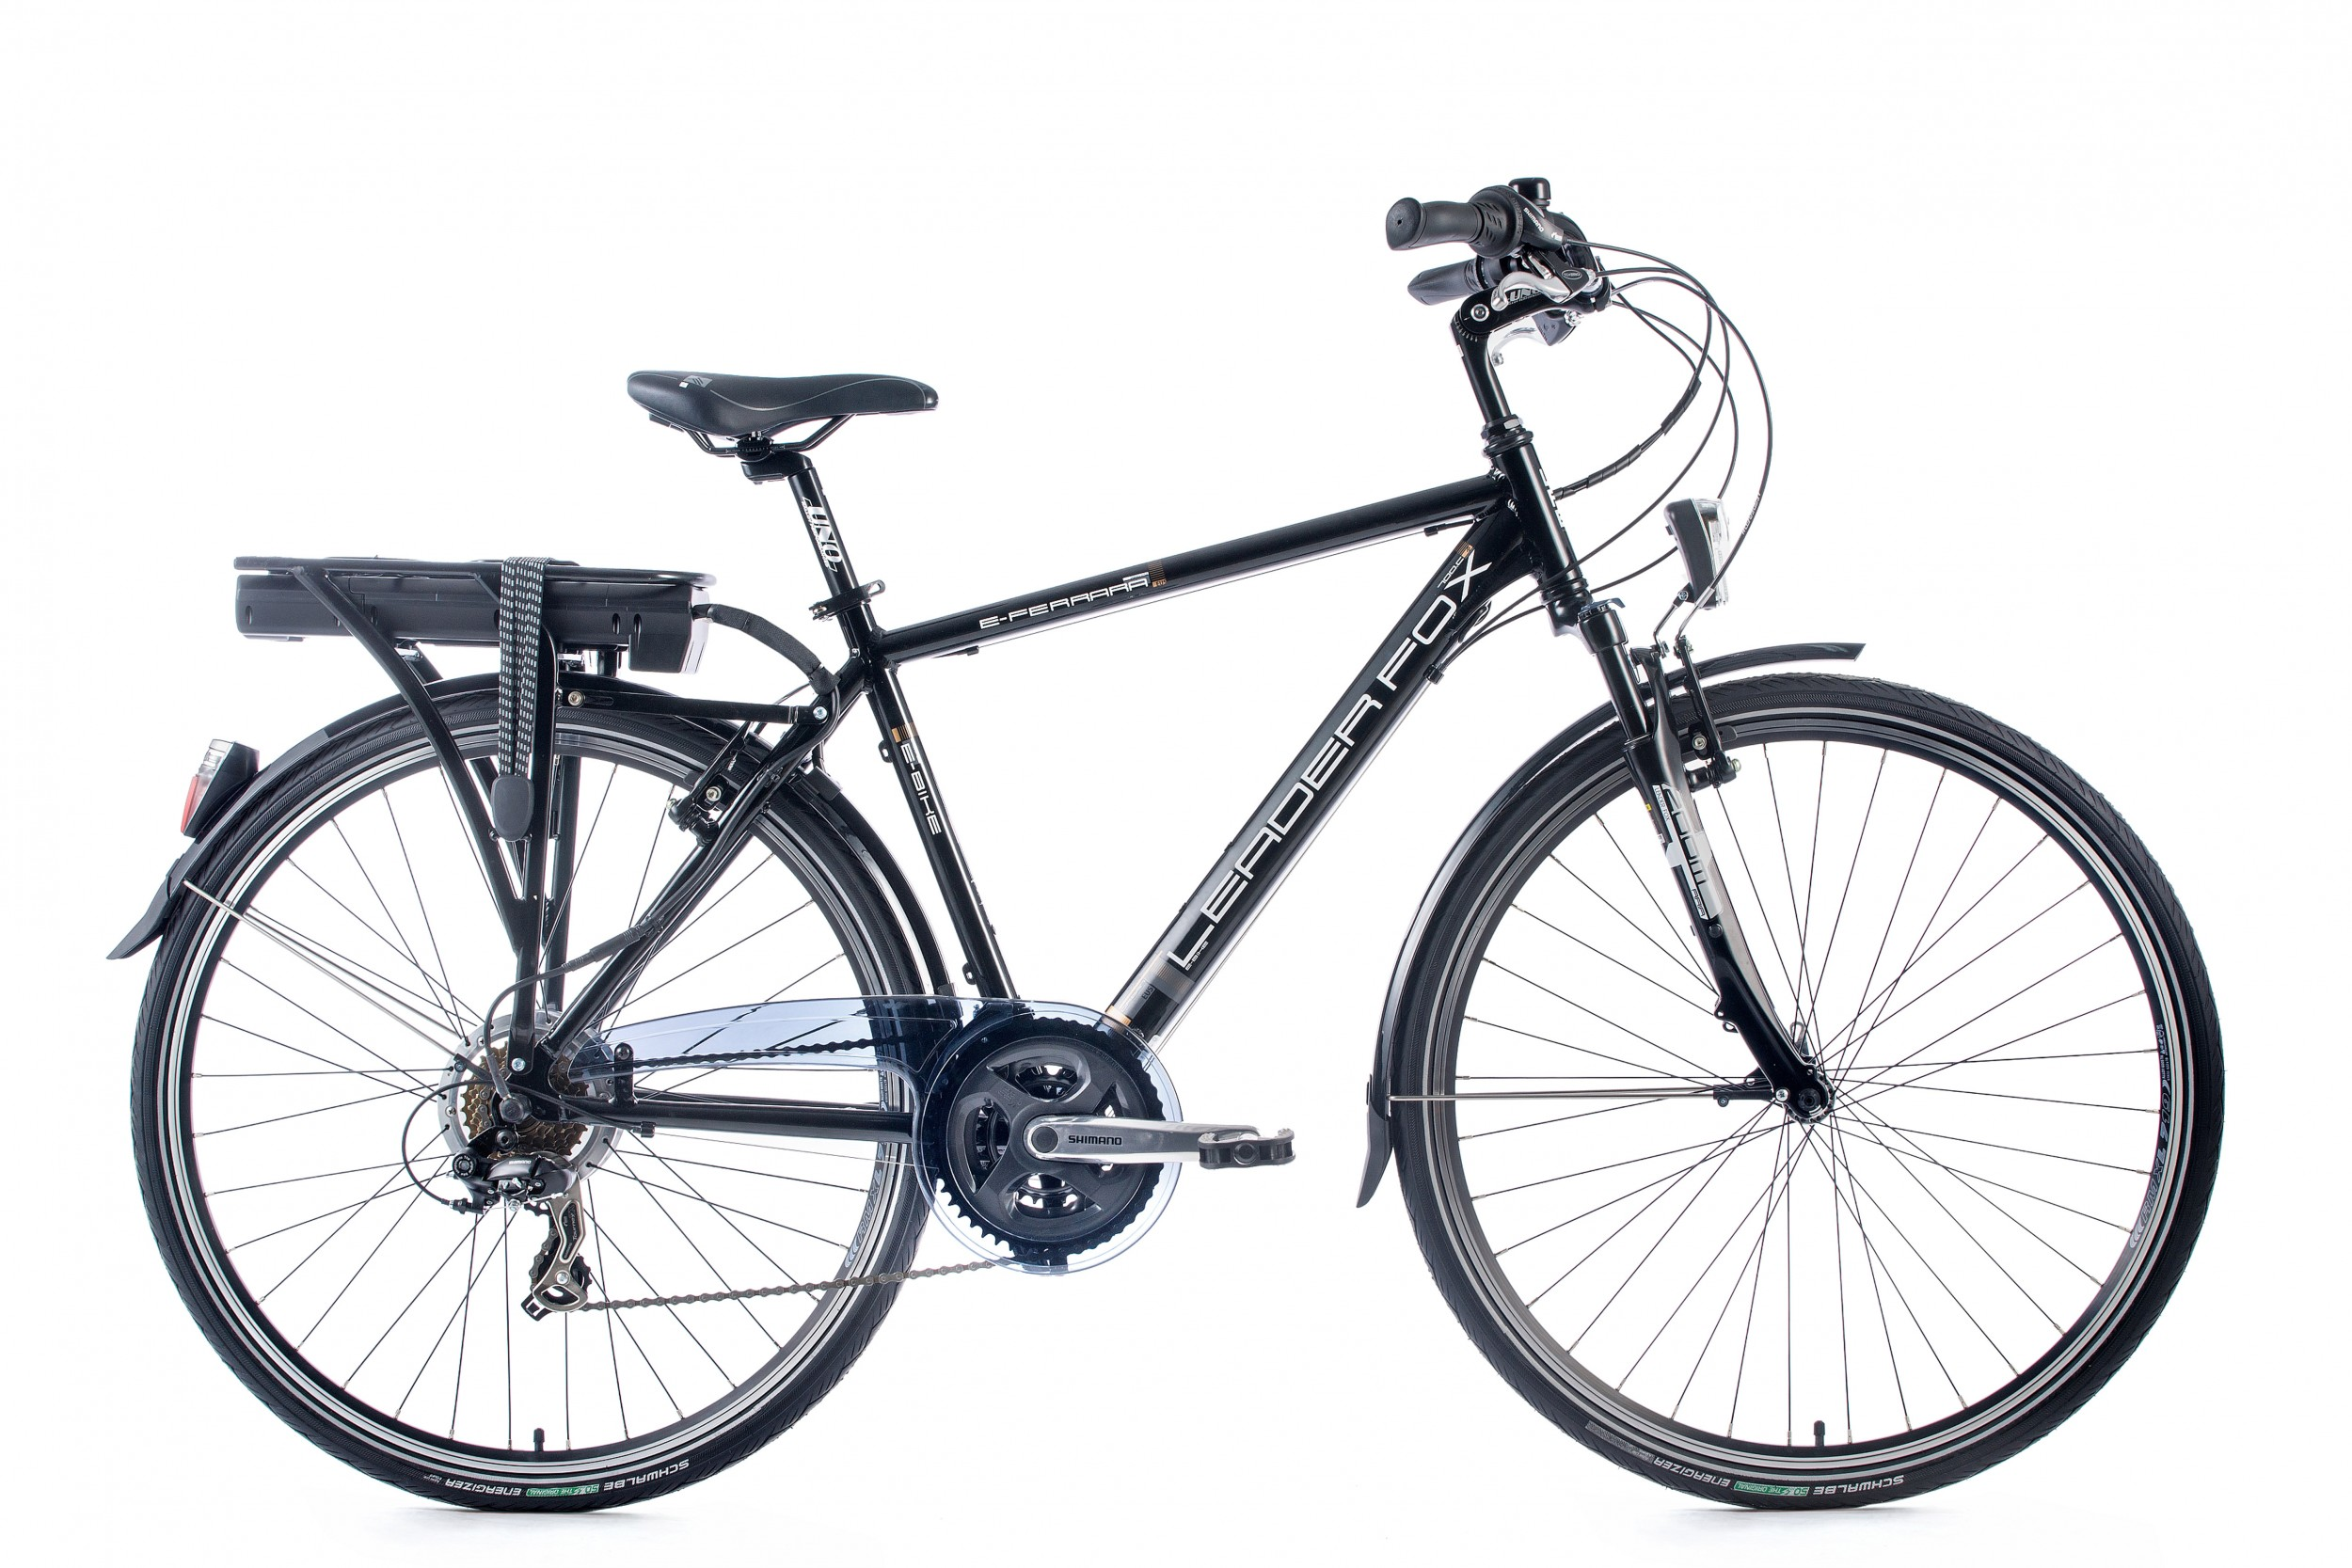 LeaderFox Ferrara E-bike Heren 48cm 21V - Zwart/Wit